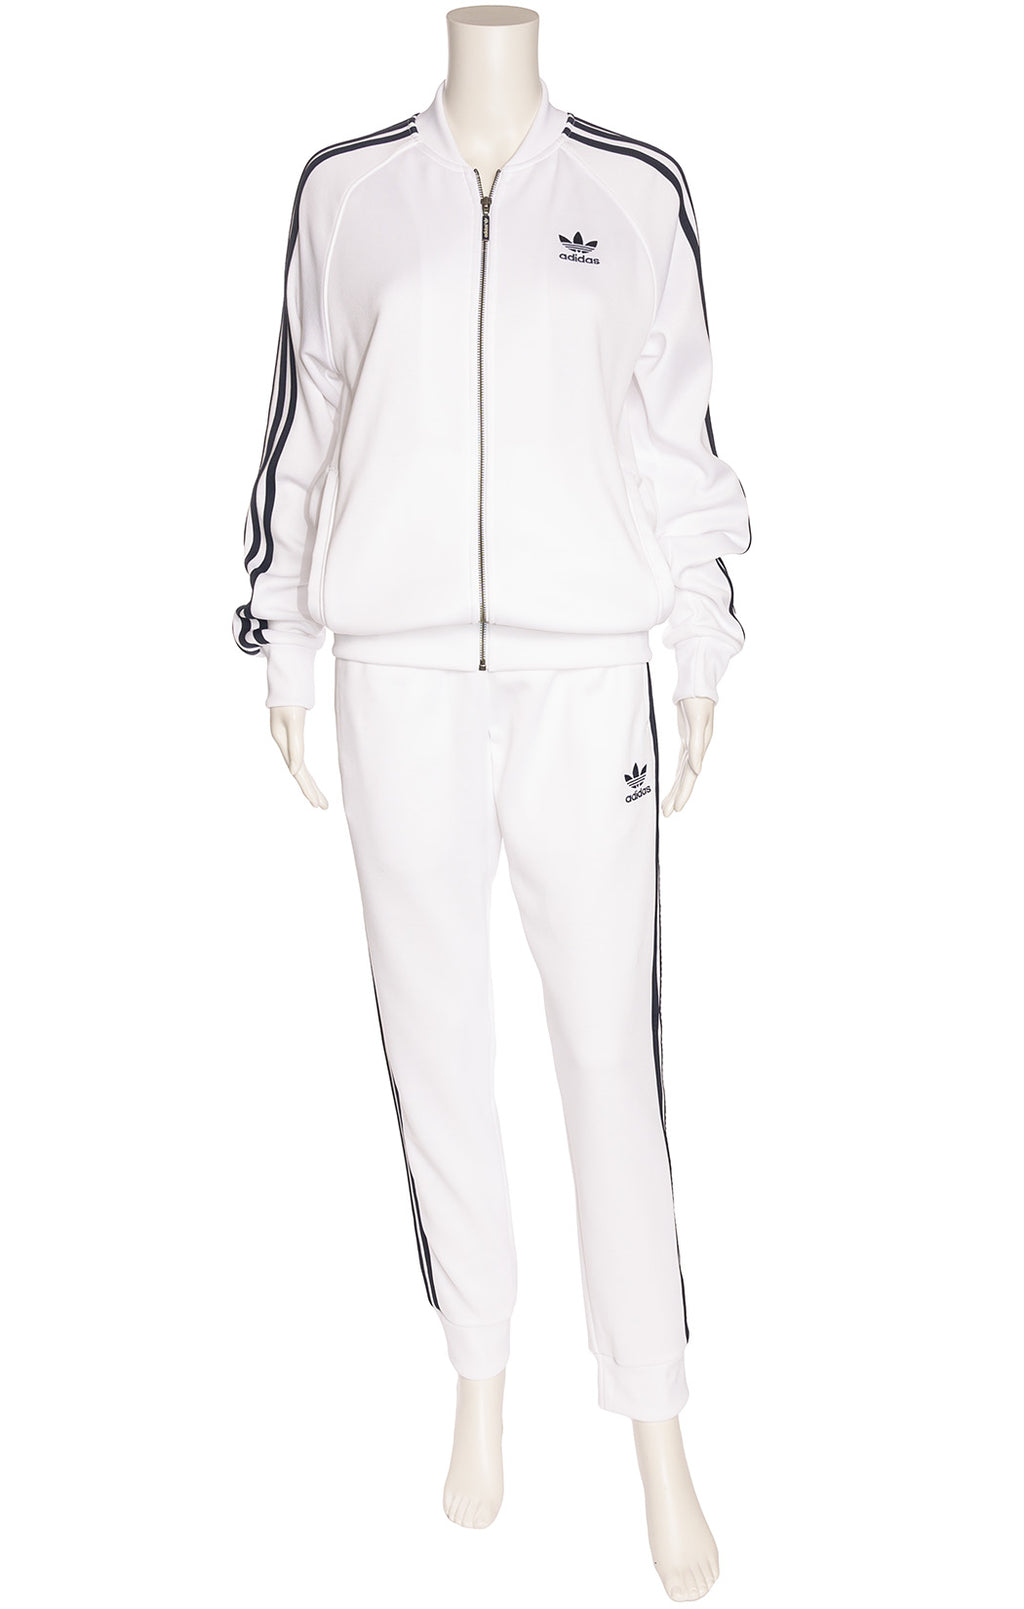 Front view of ADIDAS Tracksuit Size: Small